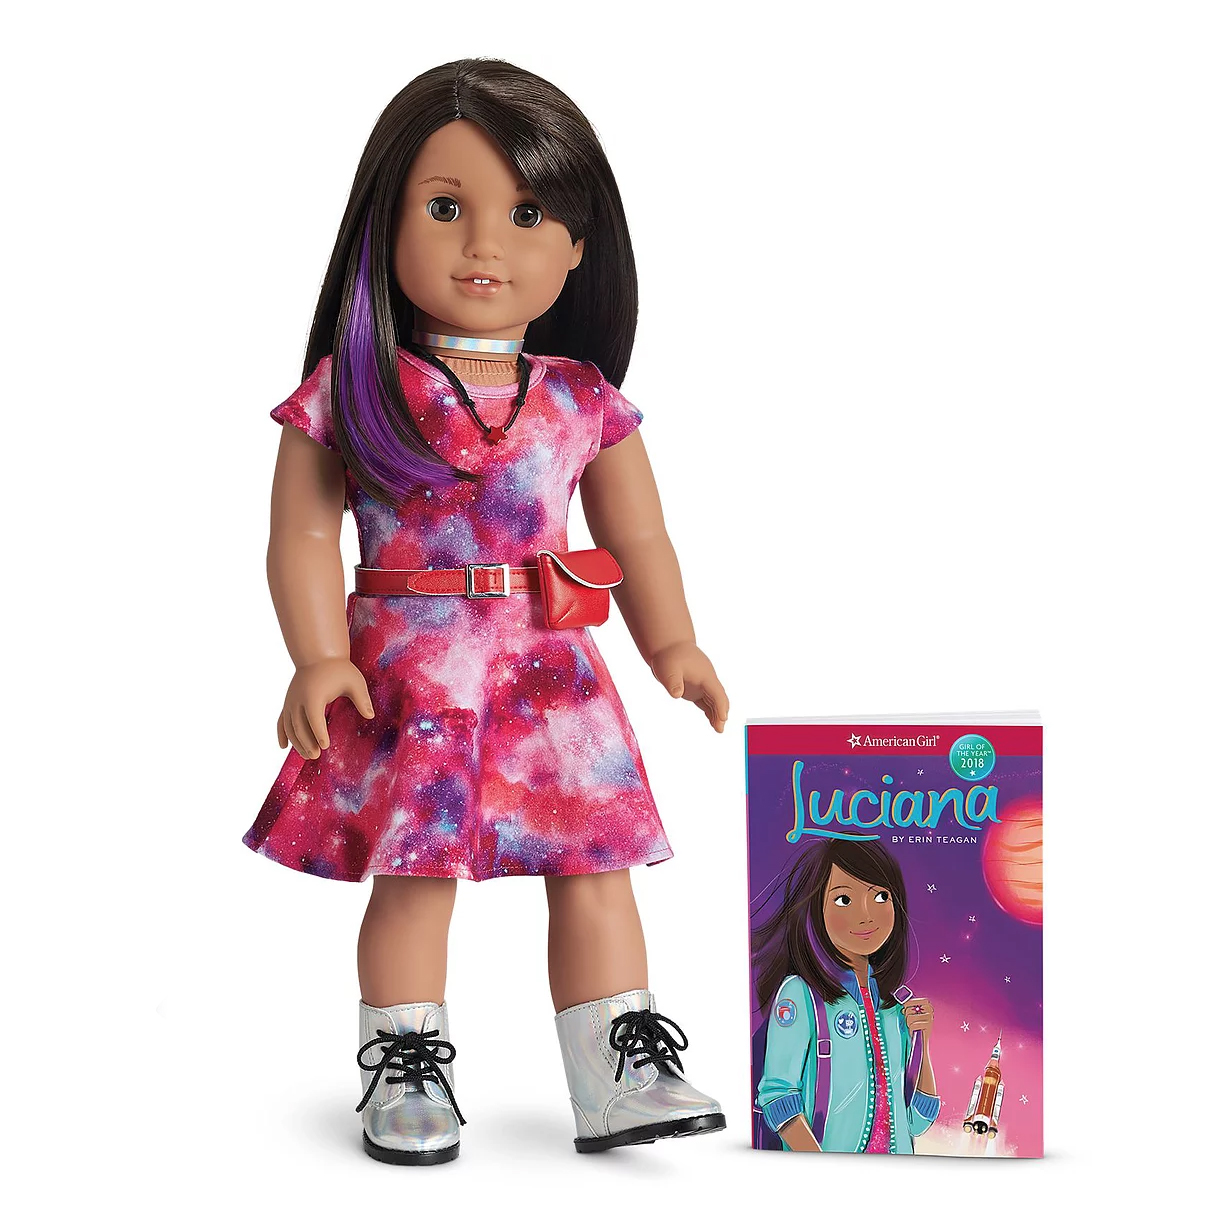 American Girl Doll Grace For Sale